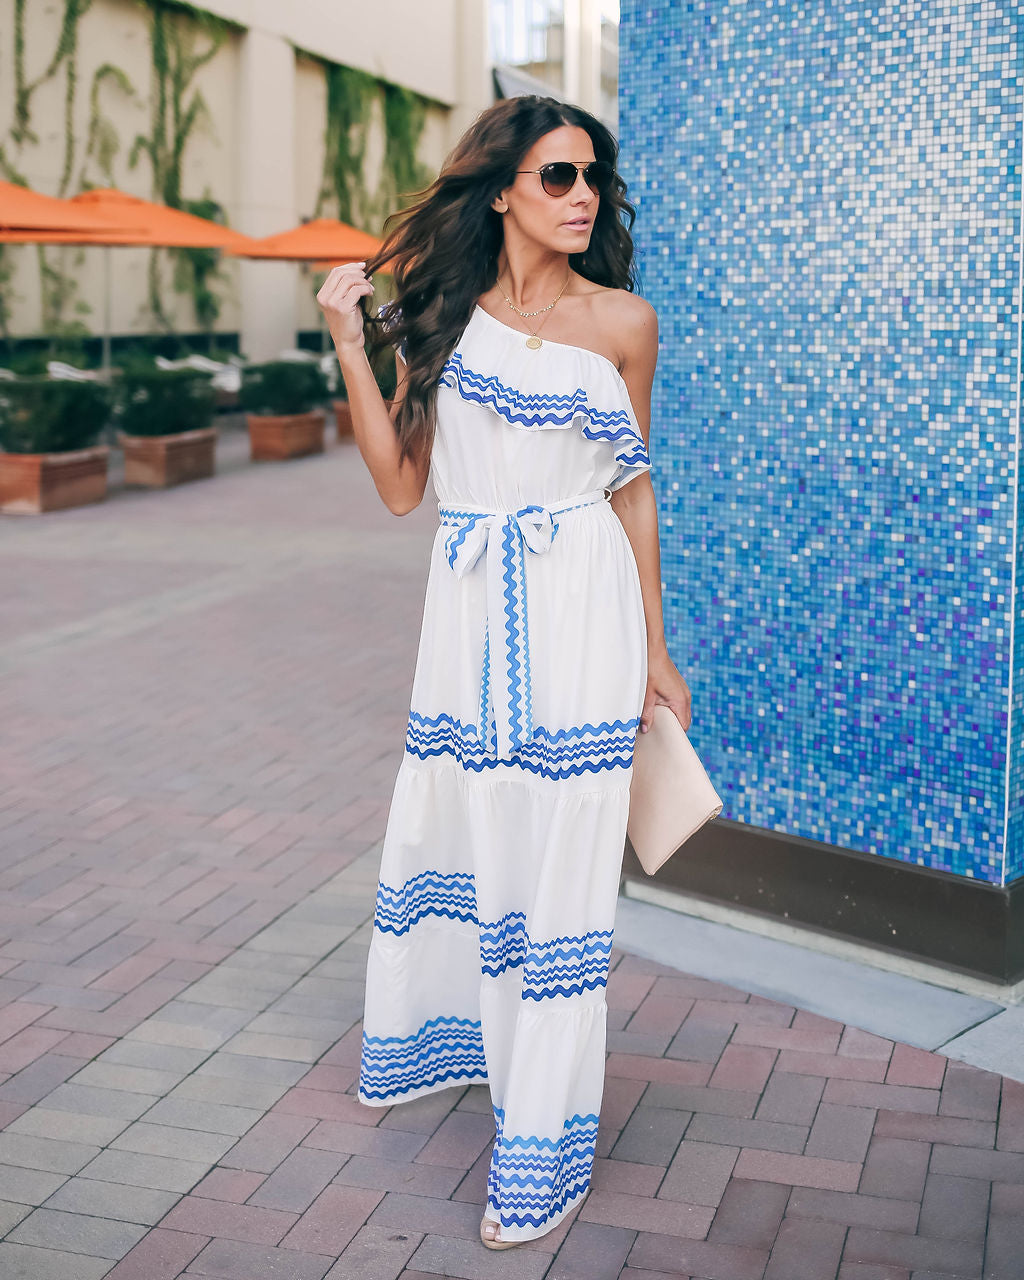 89db3919e793 Waves Upon The Shore One Shoulder Maxi Dress - Ivory/Blue - FINAL SALE